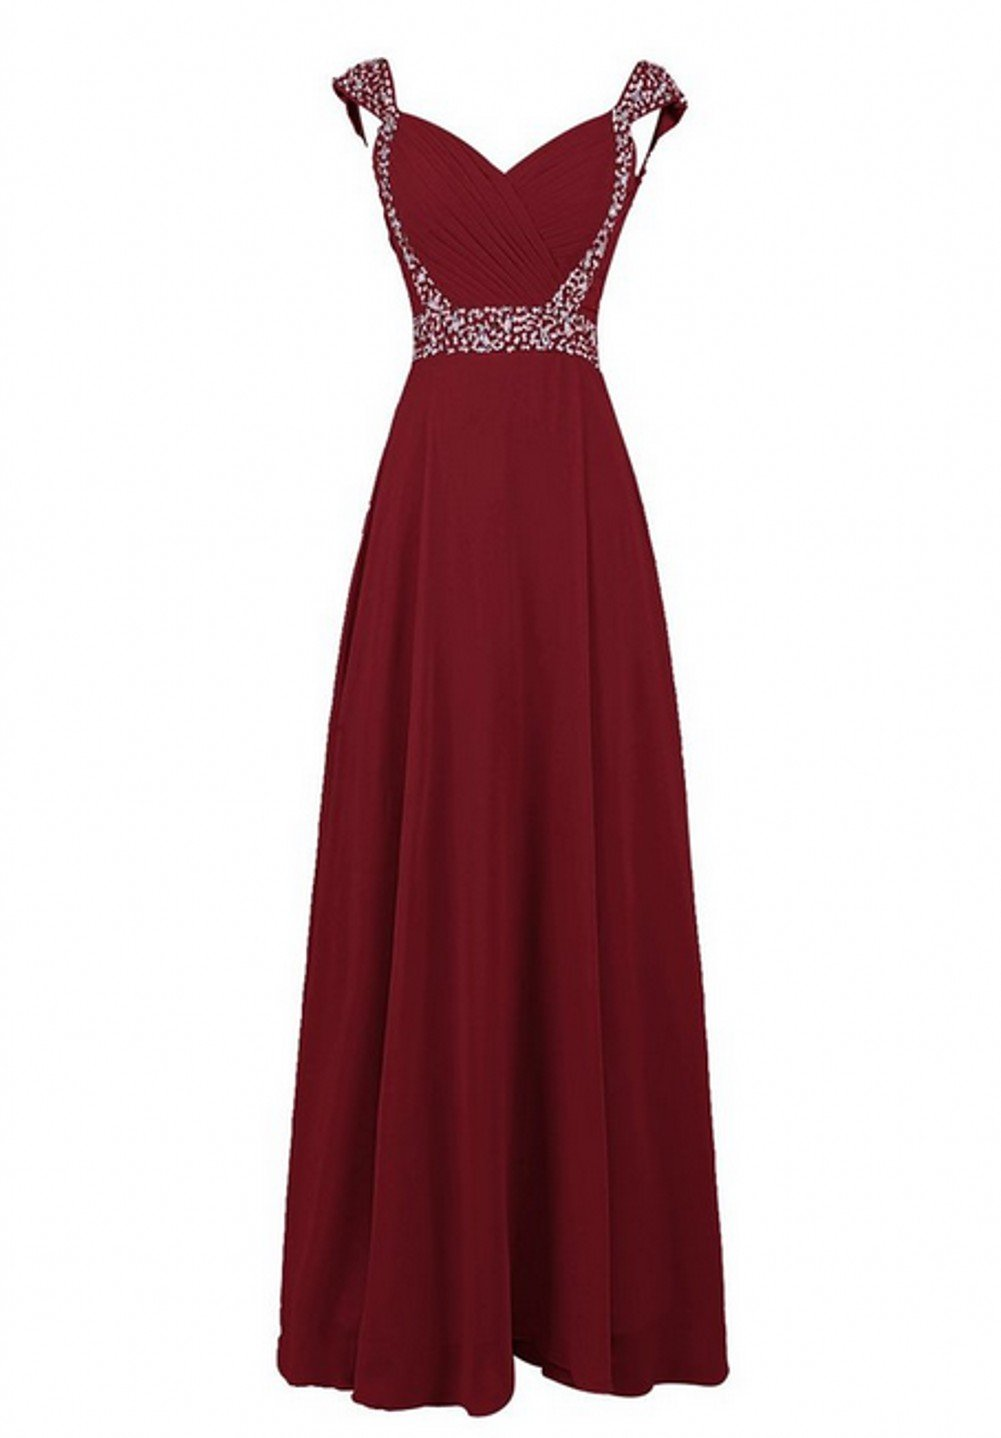 Love Dress V Neck Long Bridesmaid Dress Prom Party Gown Burgundy Us 26w